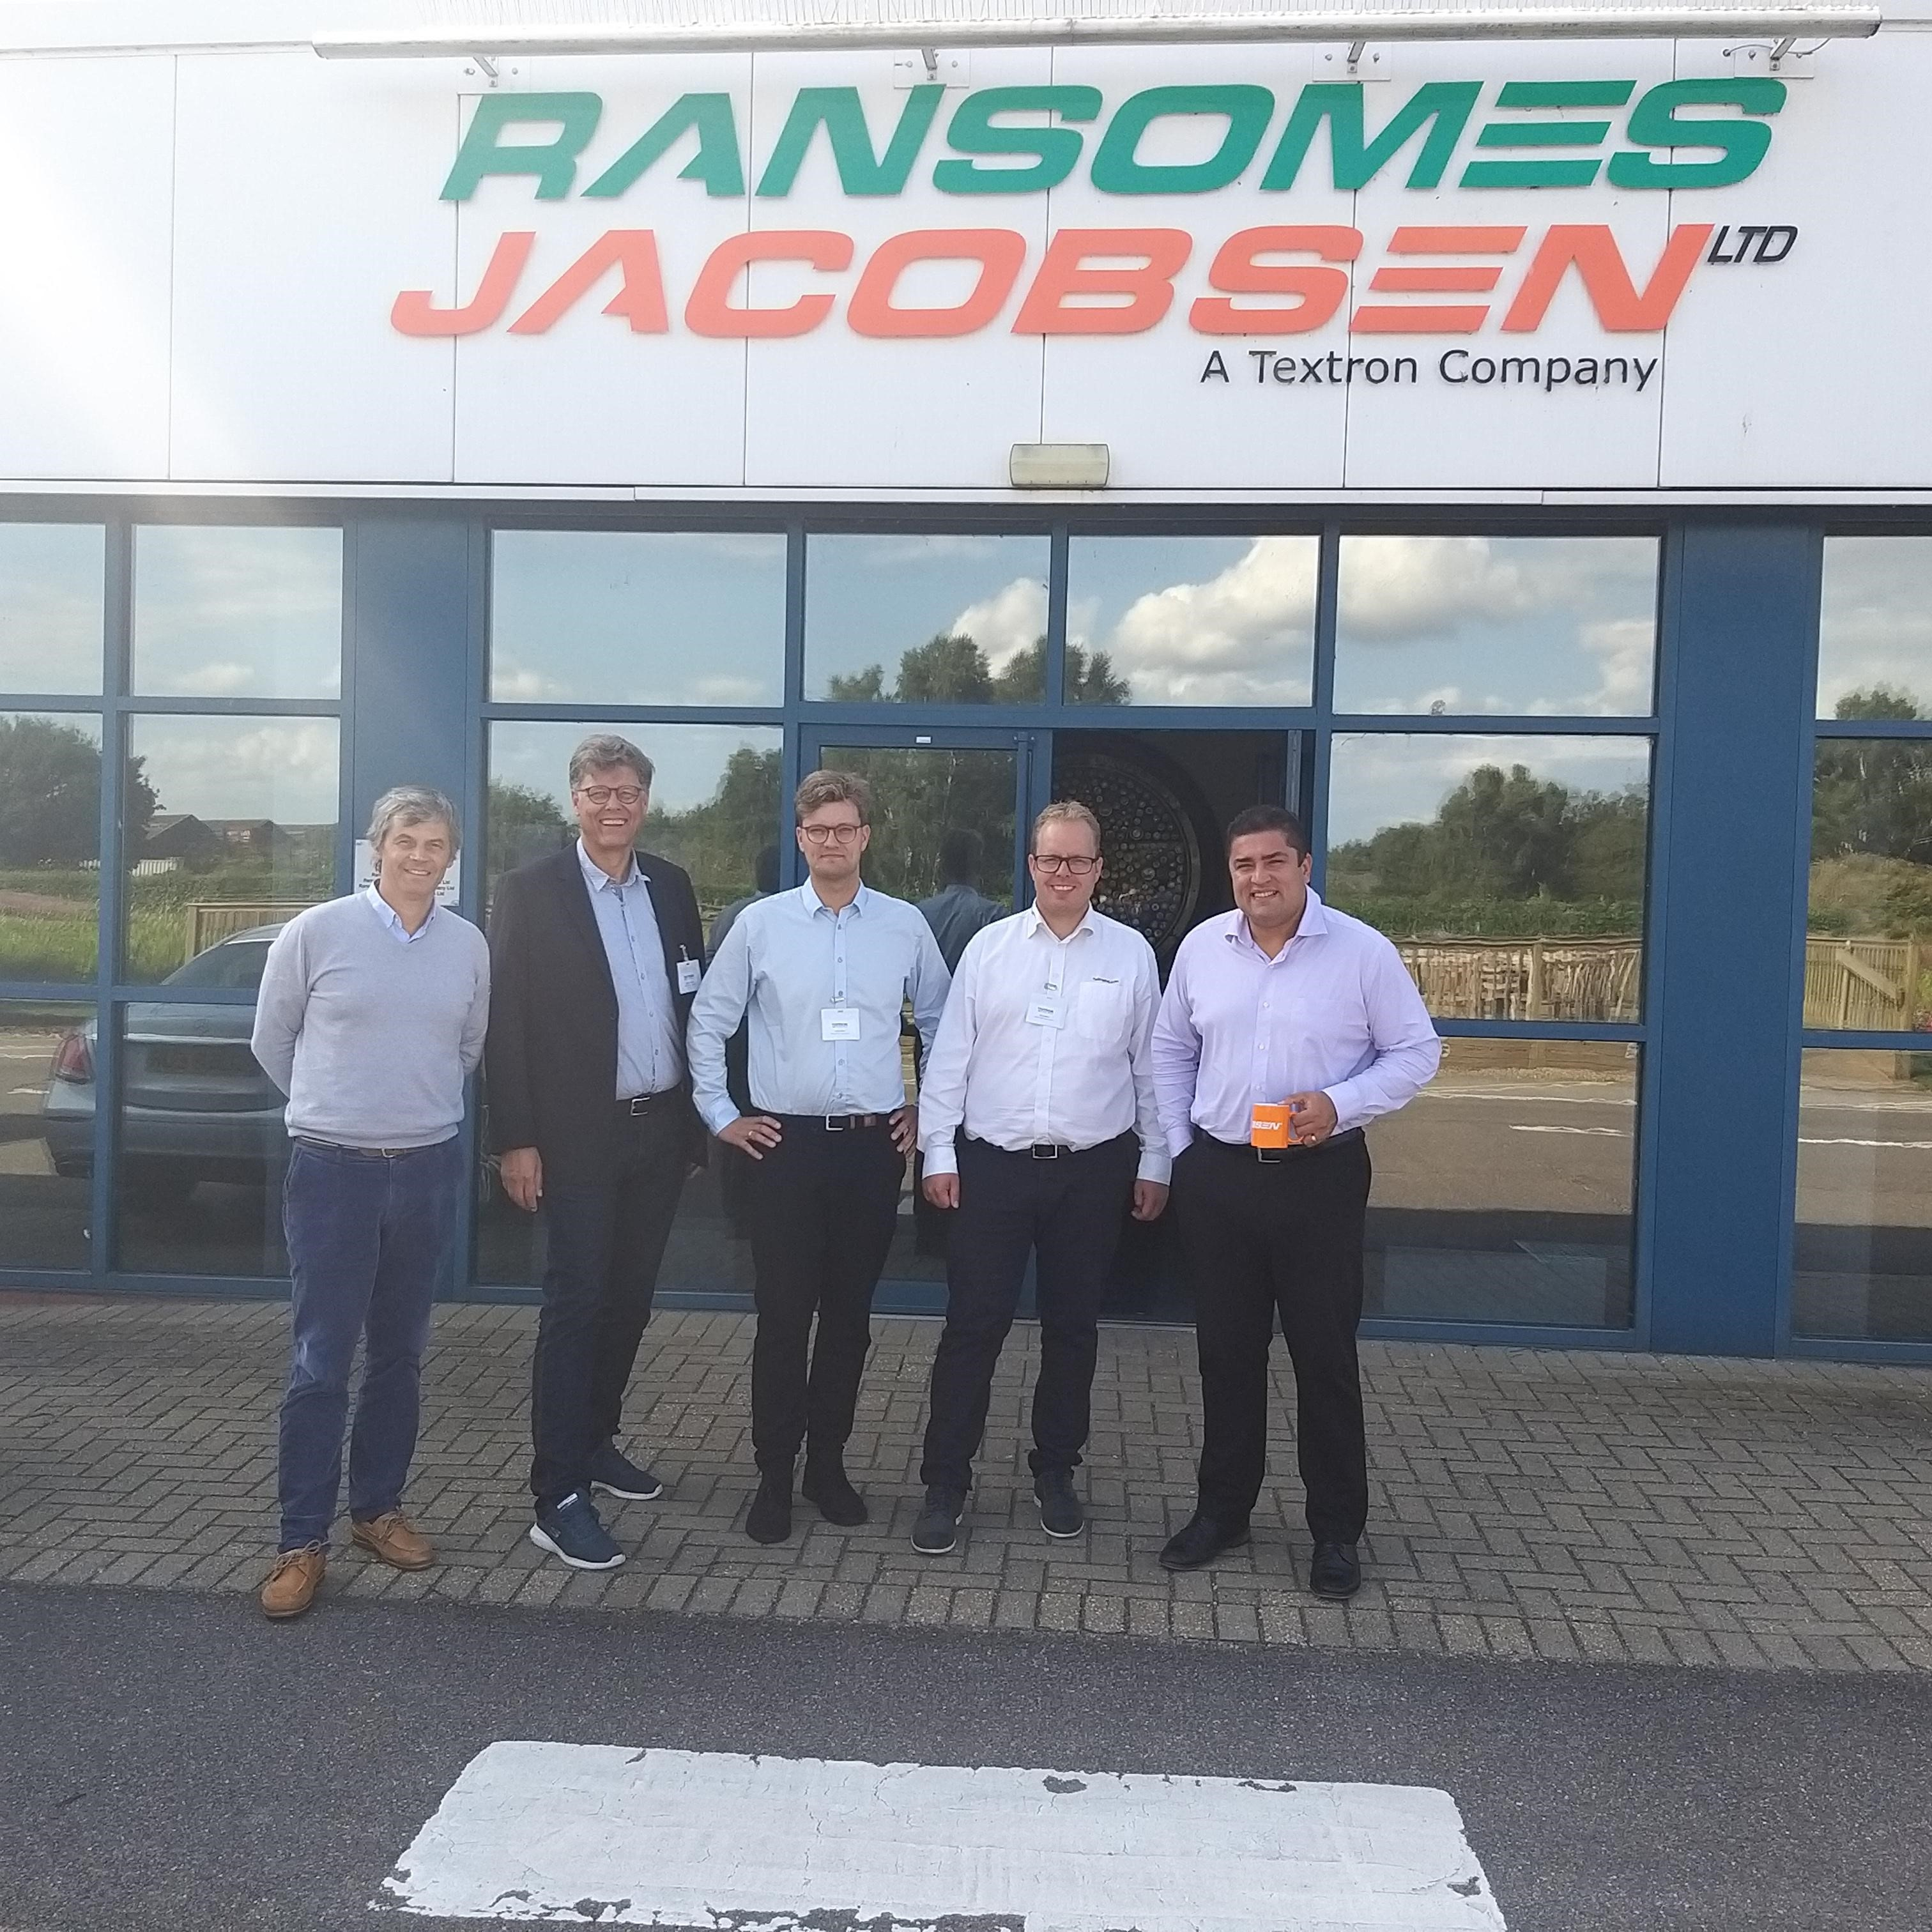 "Goncalo Carneiro, Export Regional Sales Manager Ransomes Jacobsen Ltd: ""Innovation is a keystone legacy for Jacobsen for past generation and now under Textron guidance"""